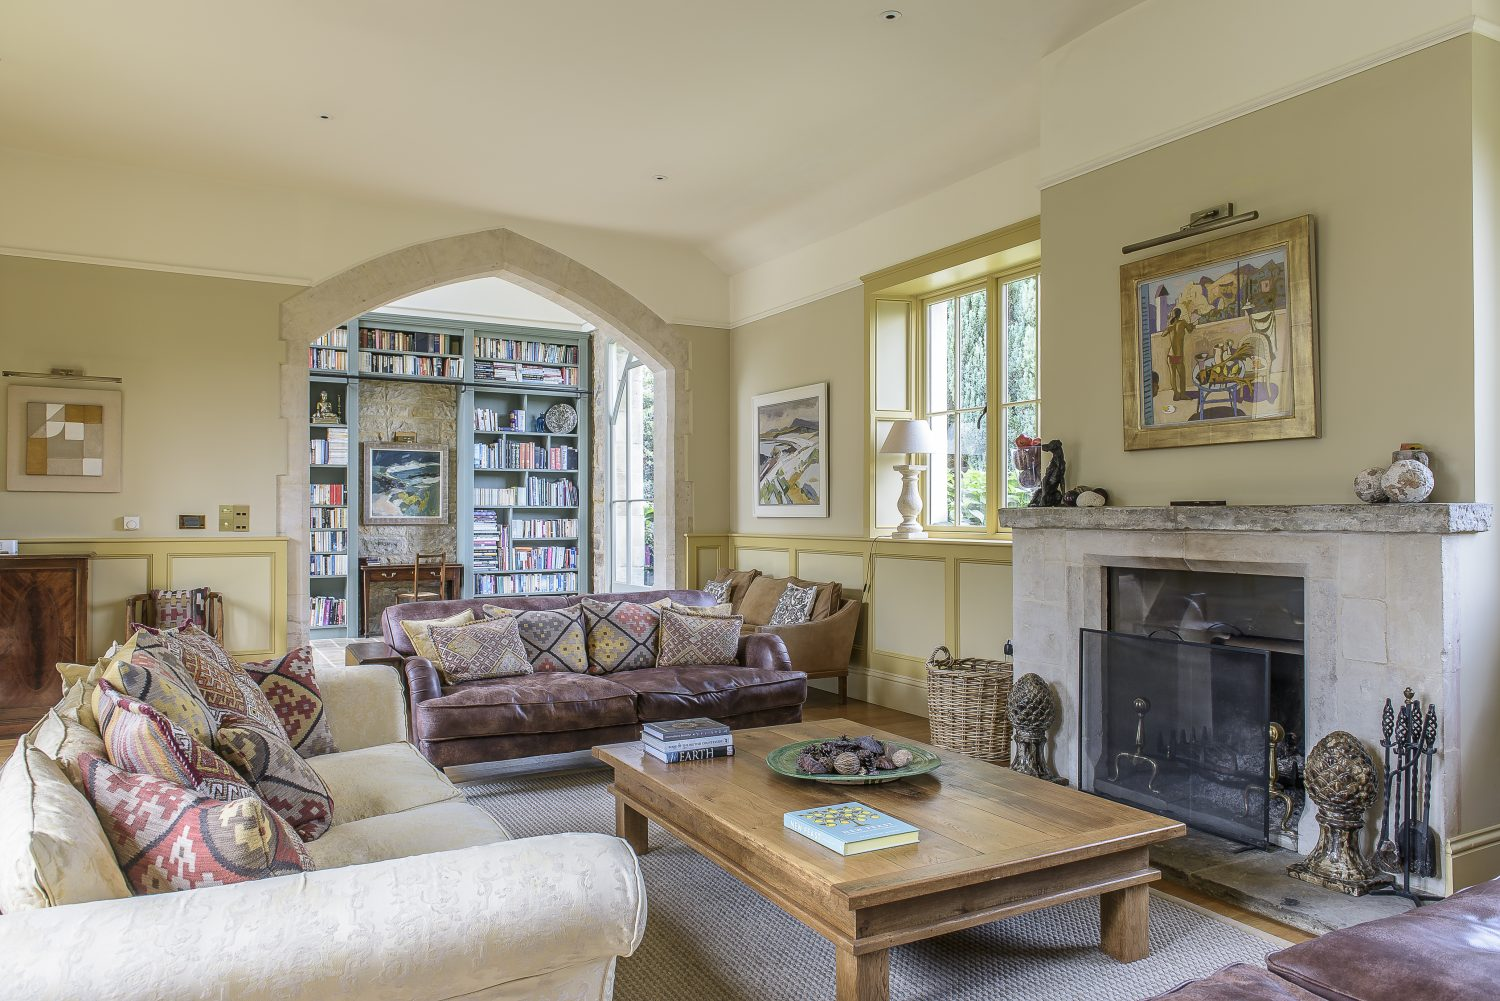 The sitting room is a lovely lofty space, with a stone mantelpiece flanked by three generous sofas piled with kilim cushions